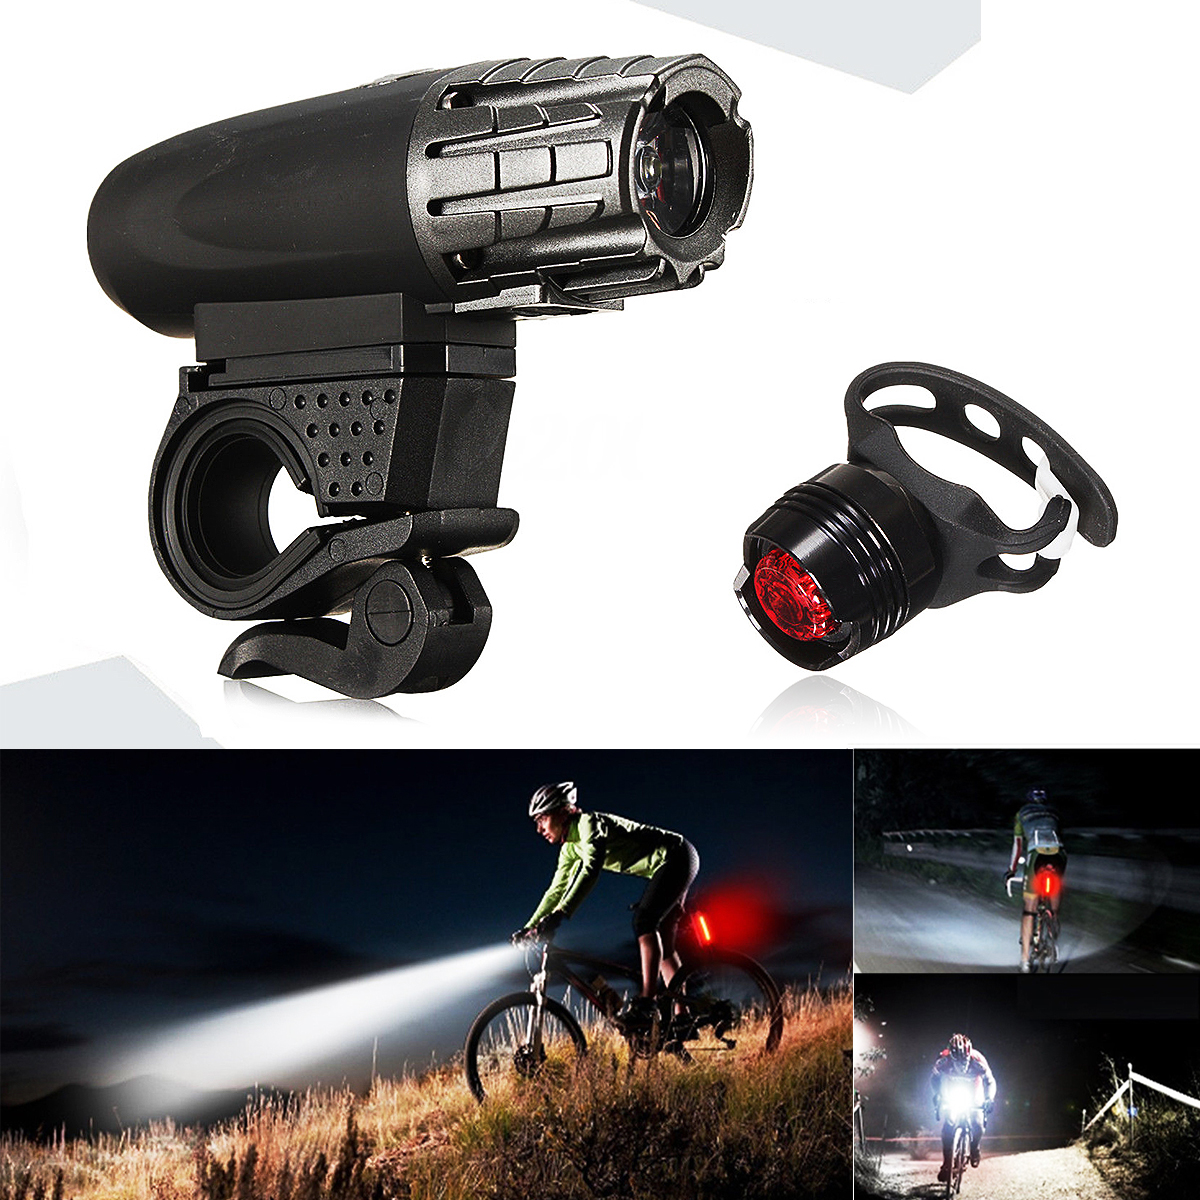 USB Rechargeable LED Bicycle Bike Bright Front Headlight and Rear Tail Light Set